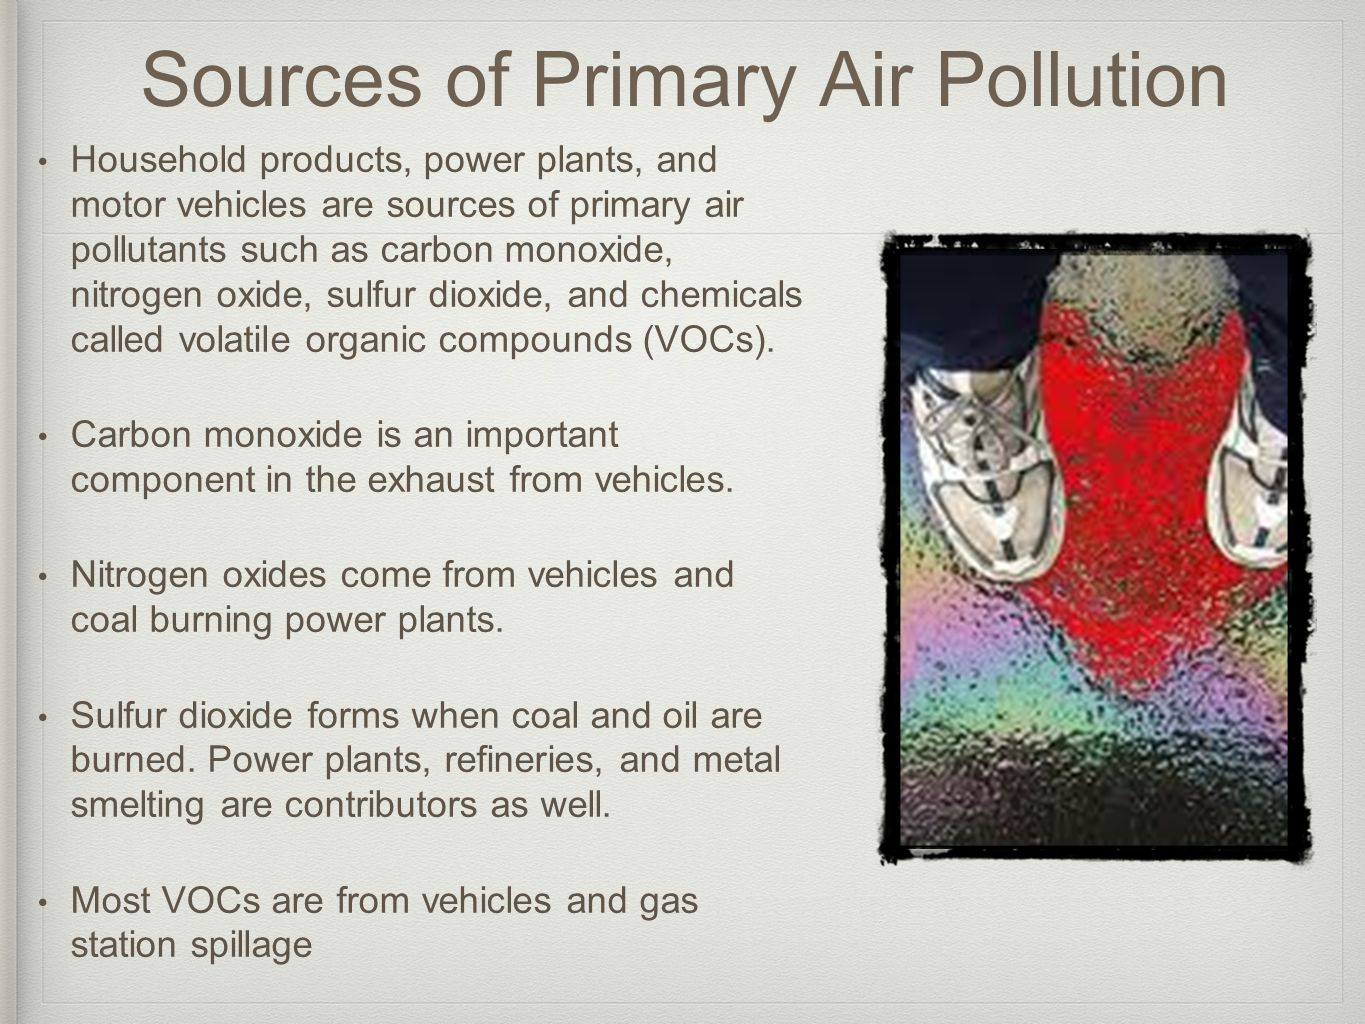 Sources of Primary Air Pollution